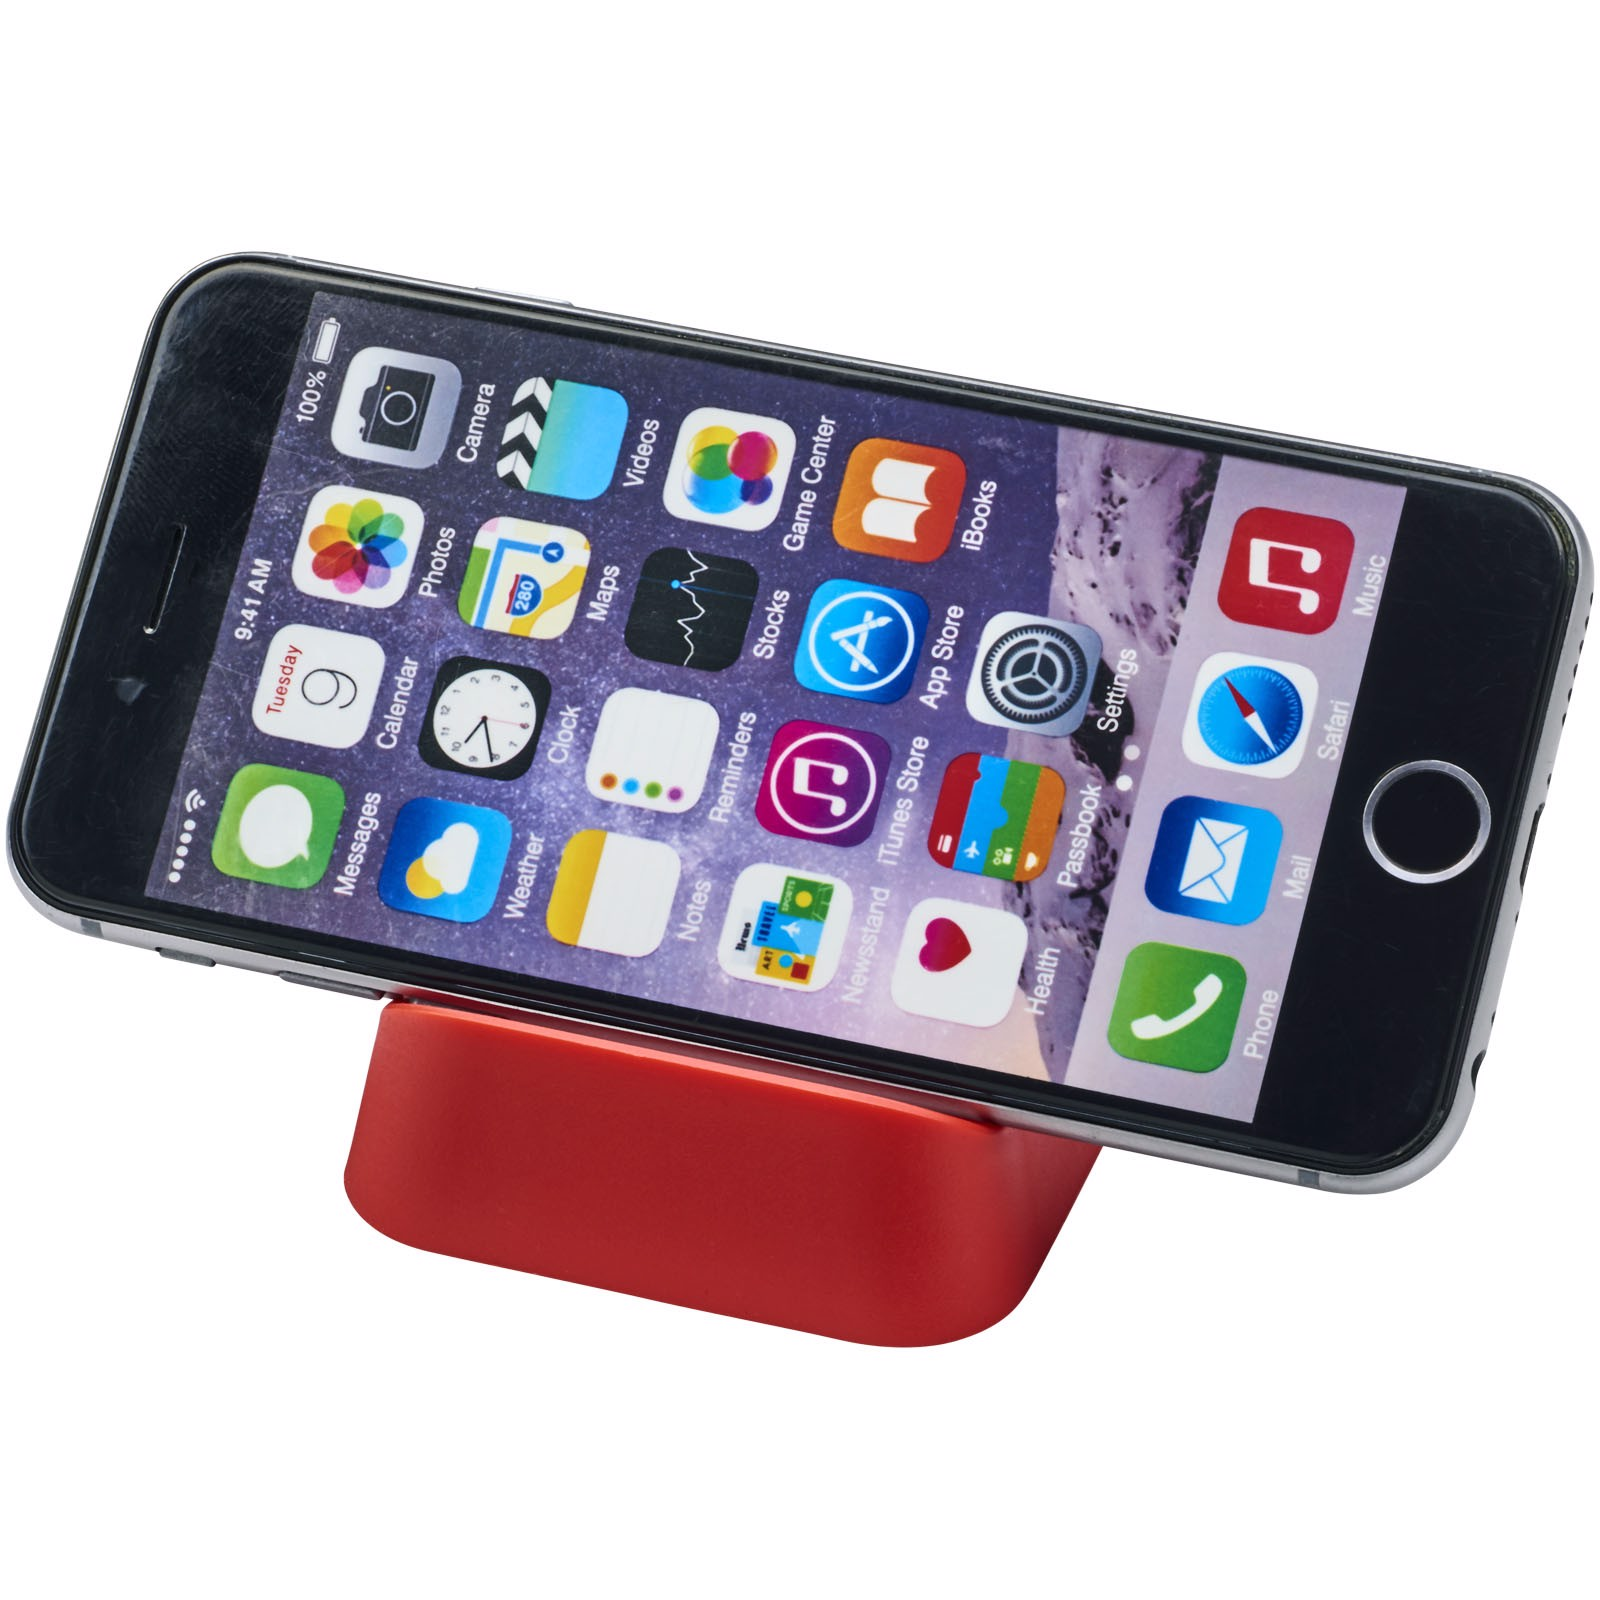 Crib phone stand - Red